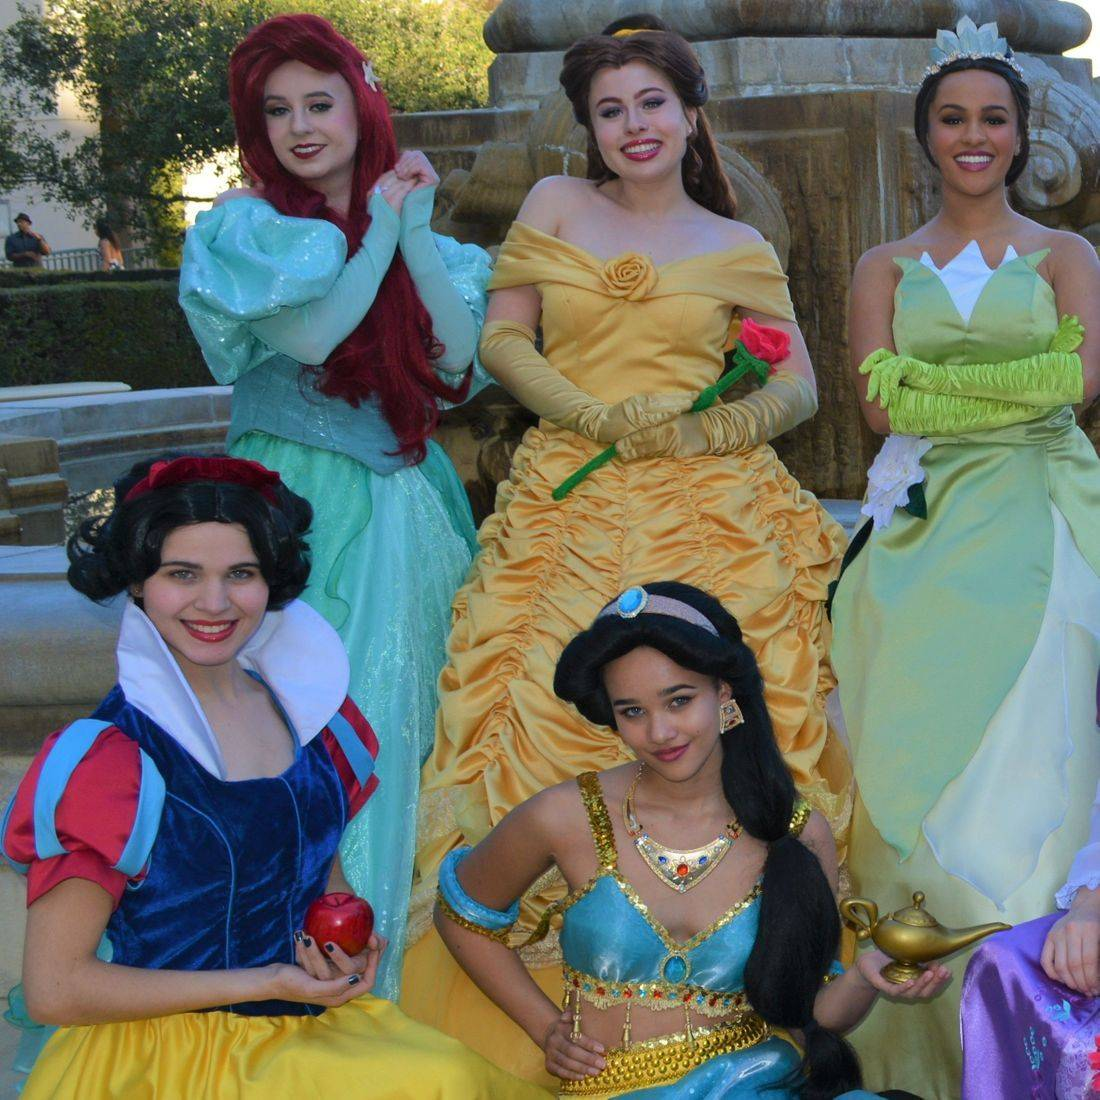 aurora,aurora party,sleeping beauty, sleeping beauty party, riverside,character,princess party, kid's party entertainment